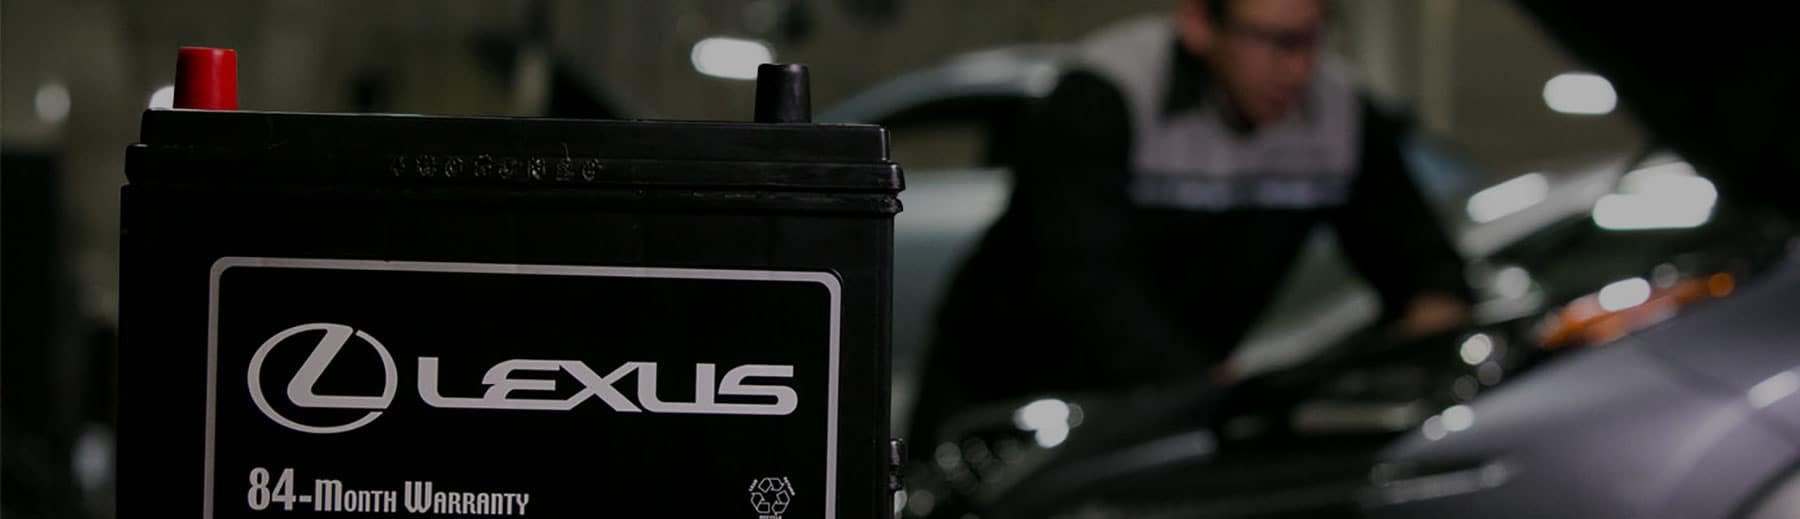 A close up of a Lexus battery with a Service Technician looking in the hood of a car in the background.